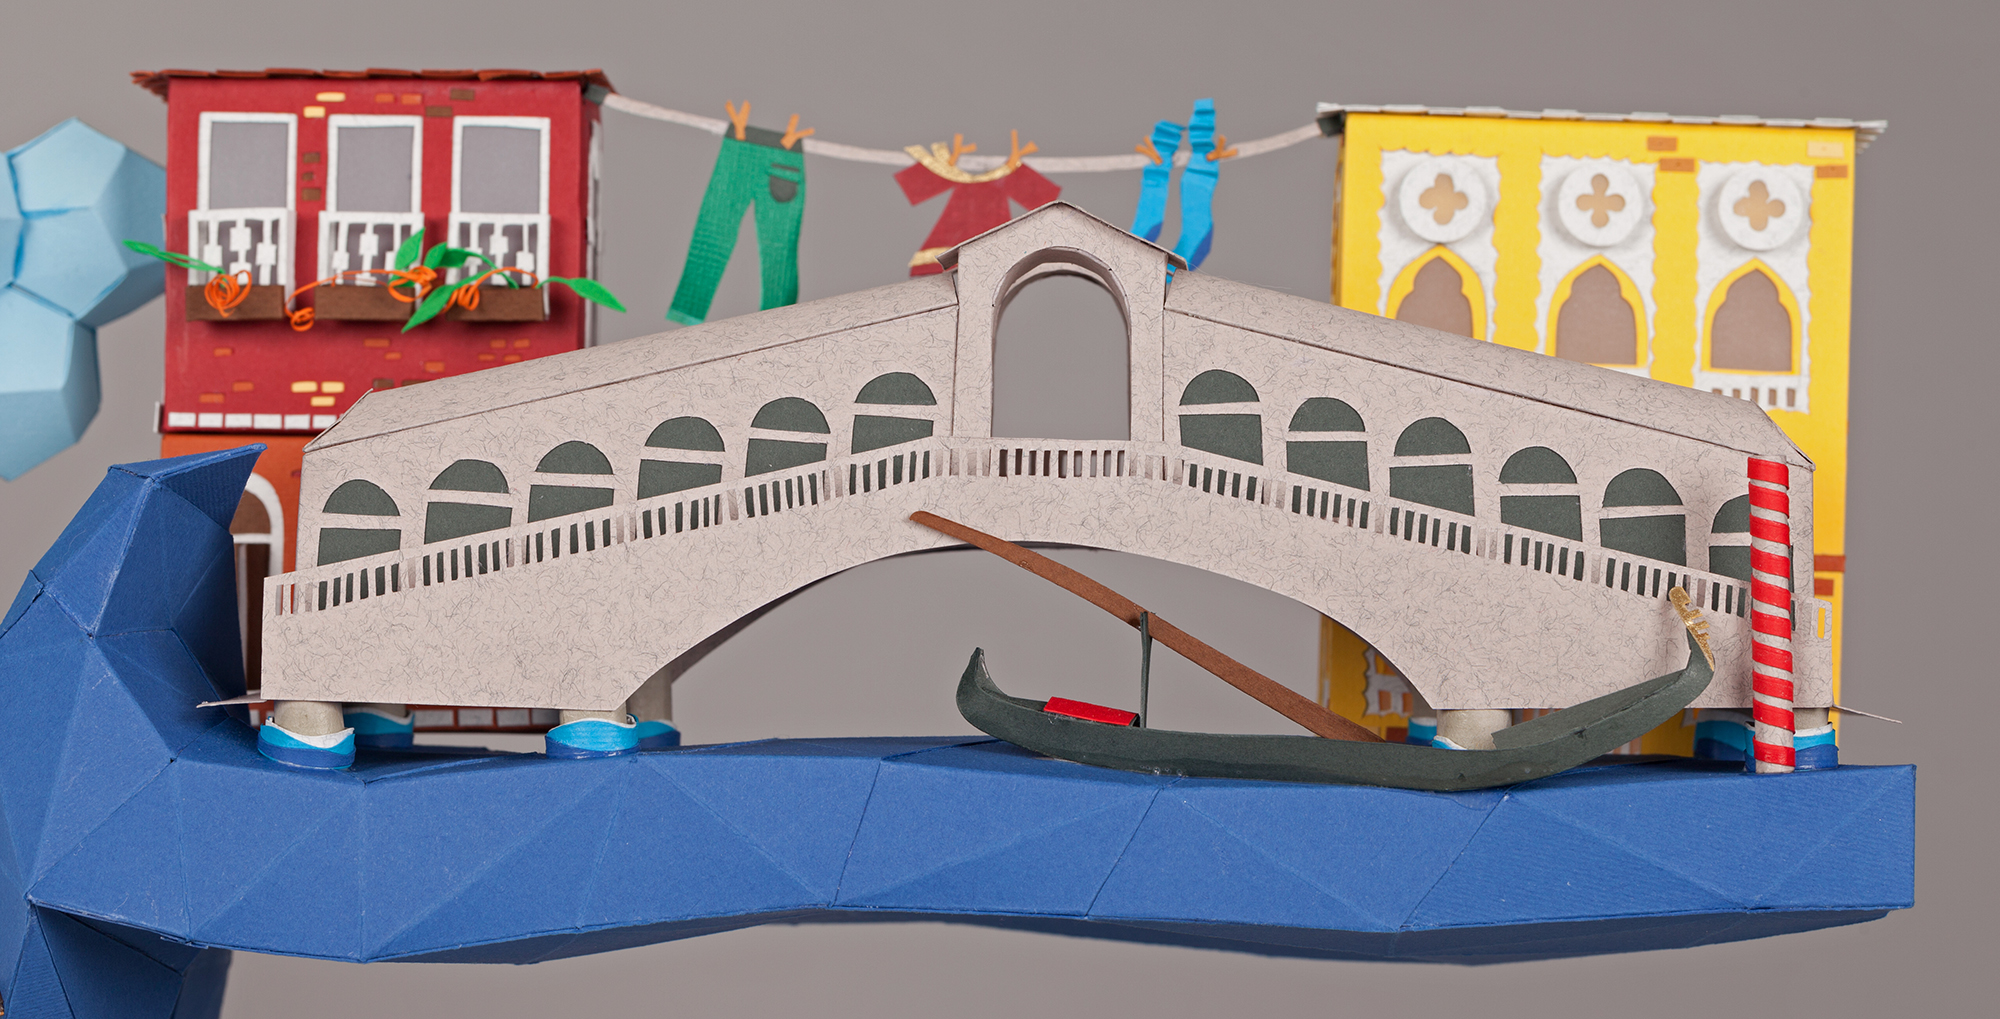 3D Letters for Silk Road Film Festival Crafted From Paper - Venice